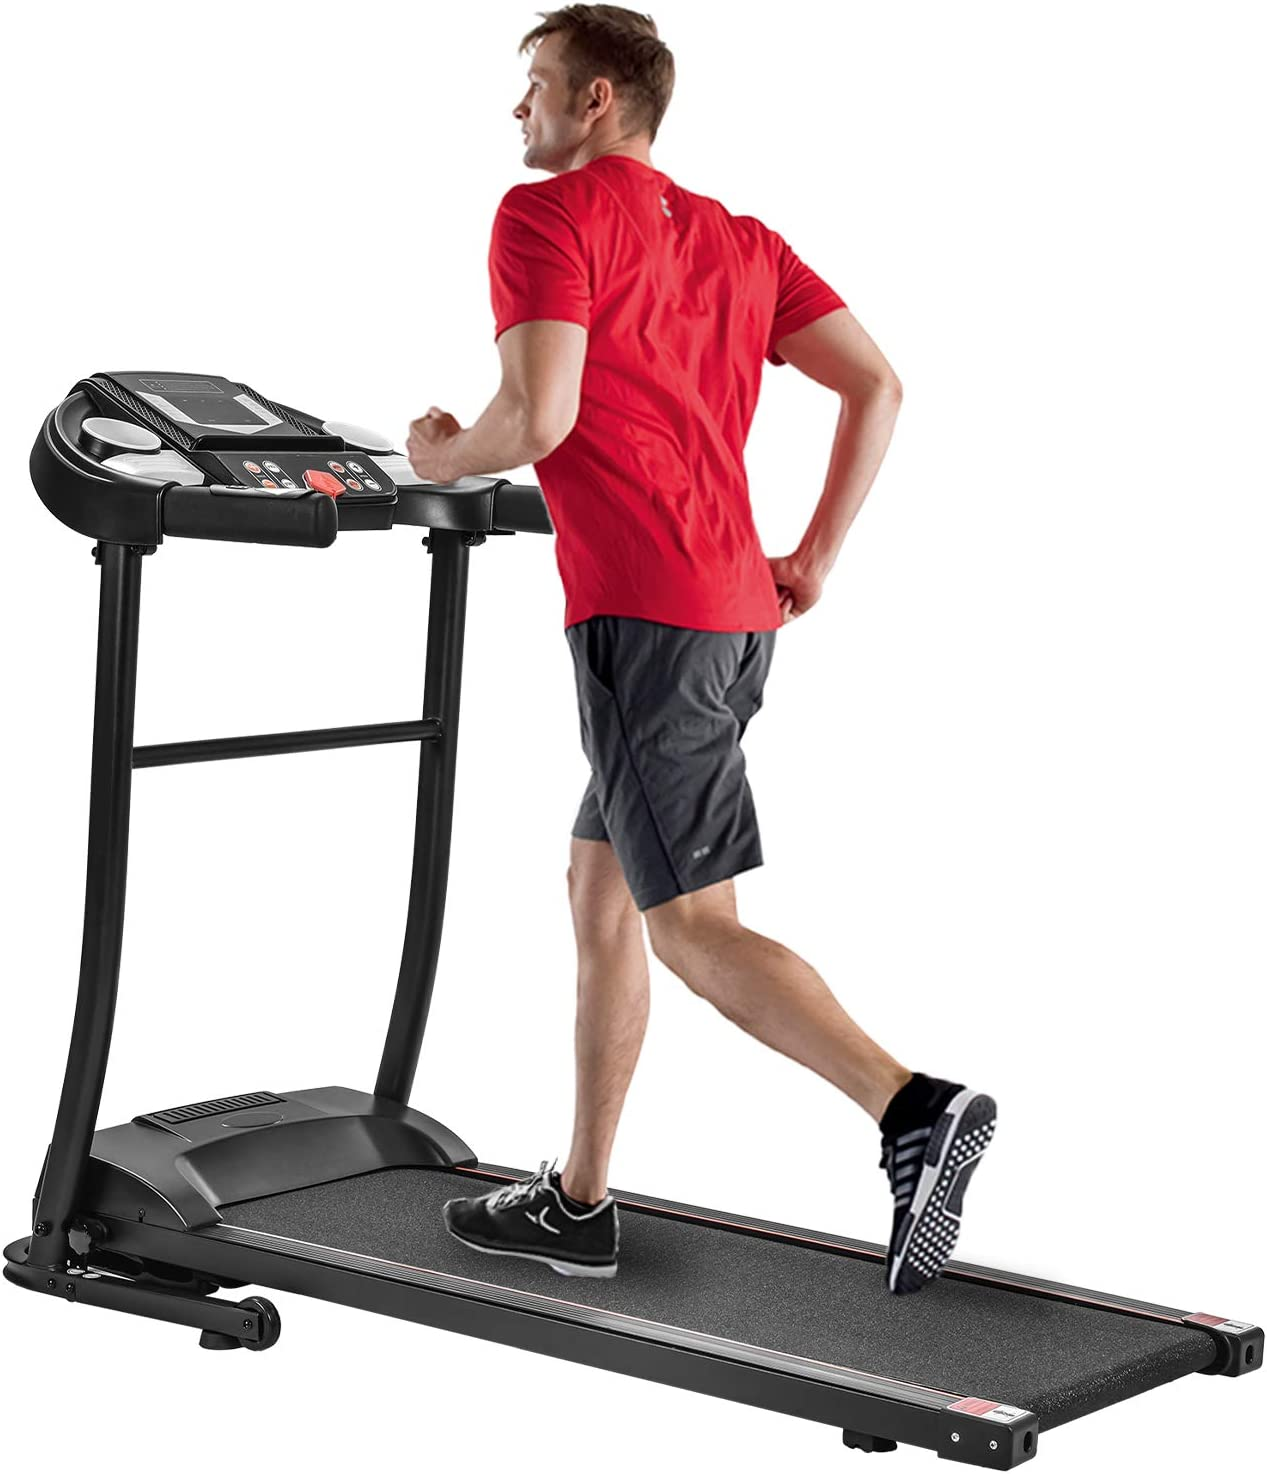 Special Campaign Folding Treadmills for OFFicial site Home 15 Programs Treadmill MP preset with